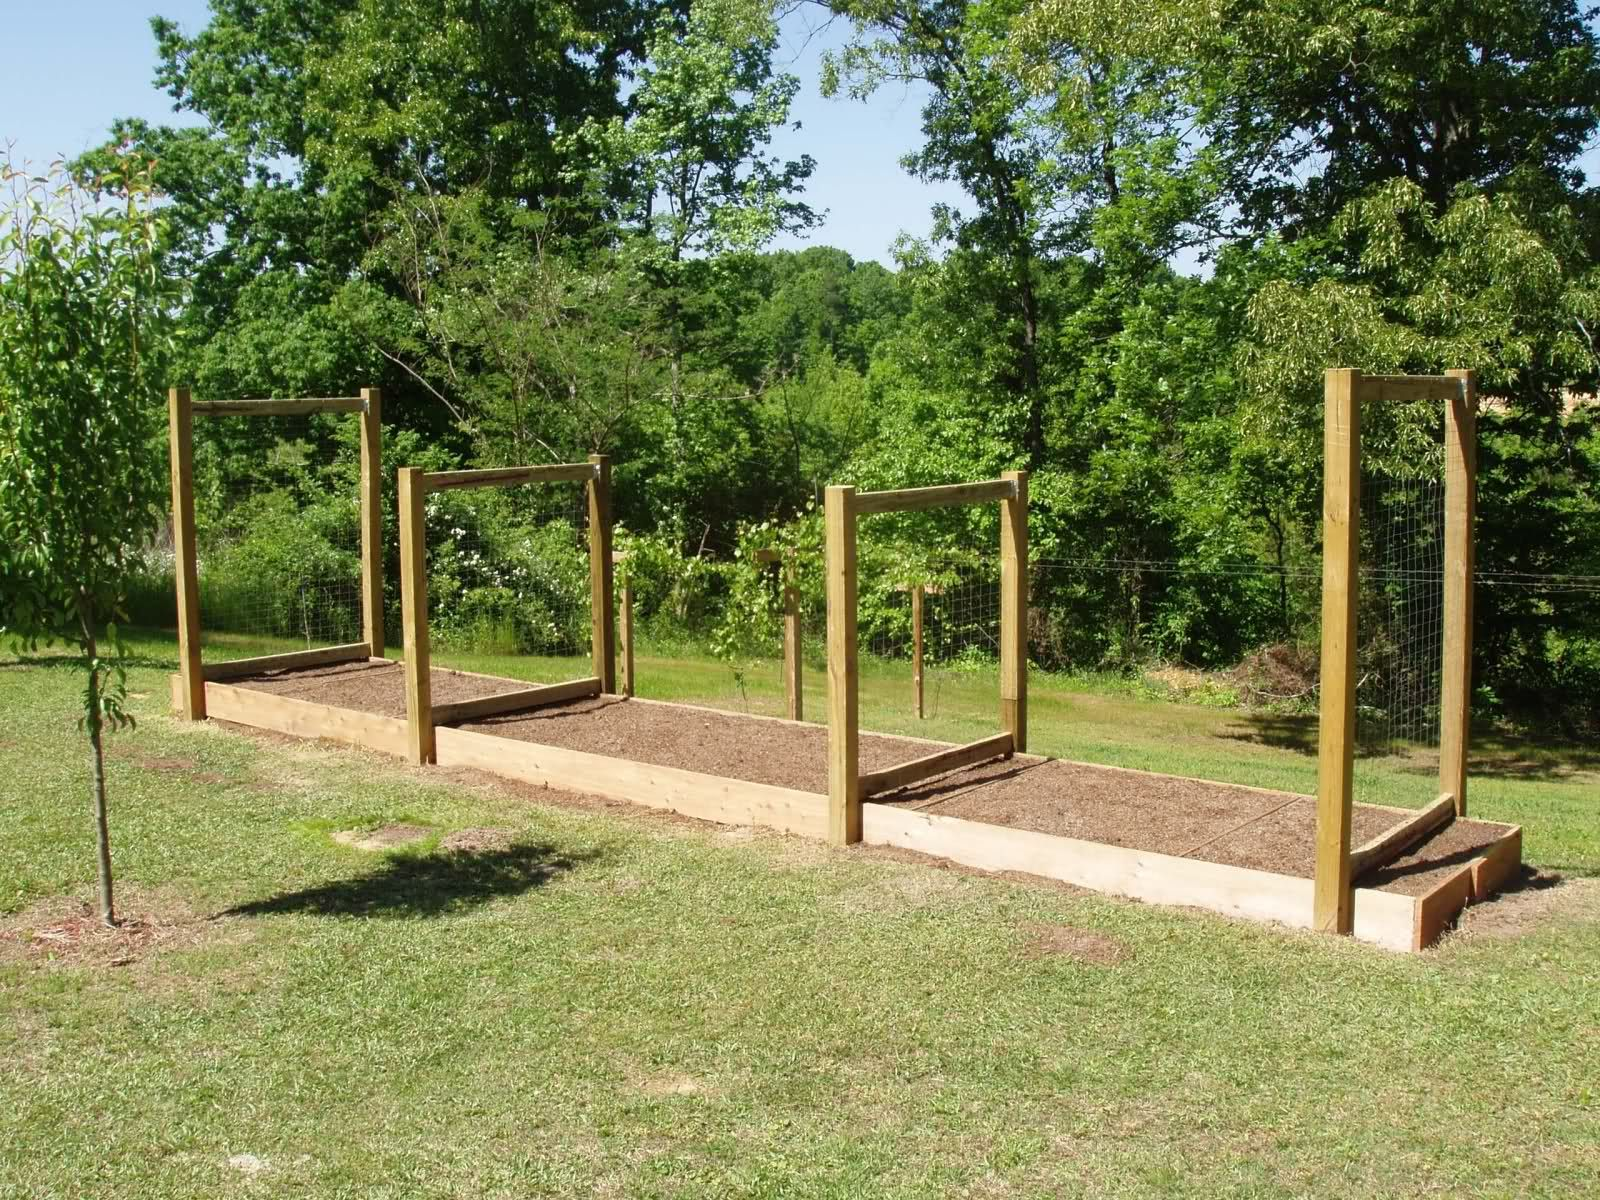 Garden Trellis Ideas trellises serve an important function in the garden they can be completely utilitarian or they Vegetable Garden Trellis Ideas Trellis Ideas Vegetable Garden